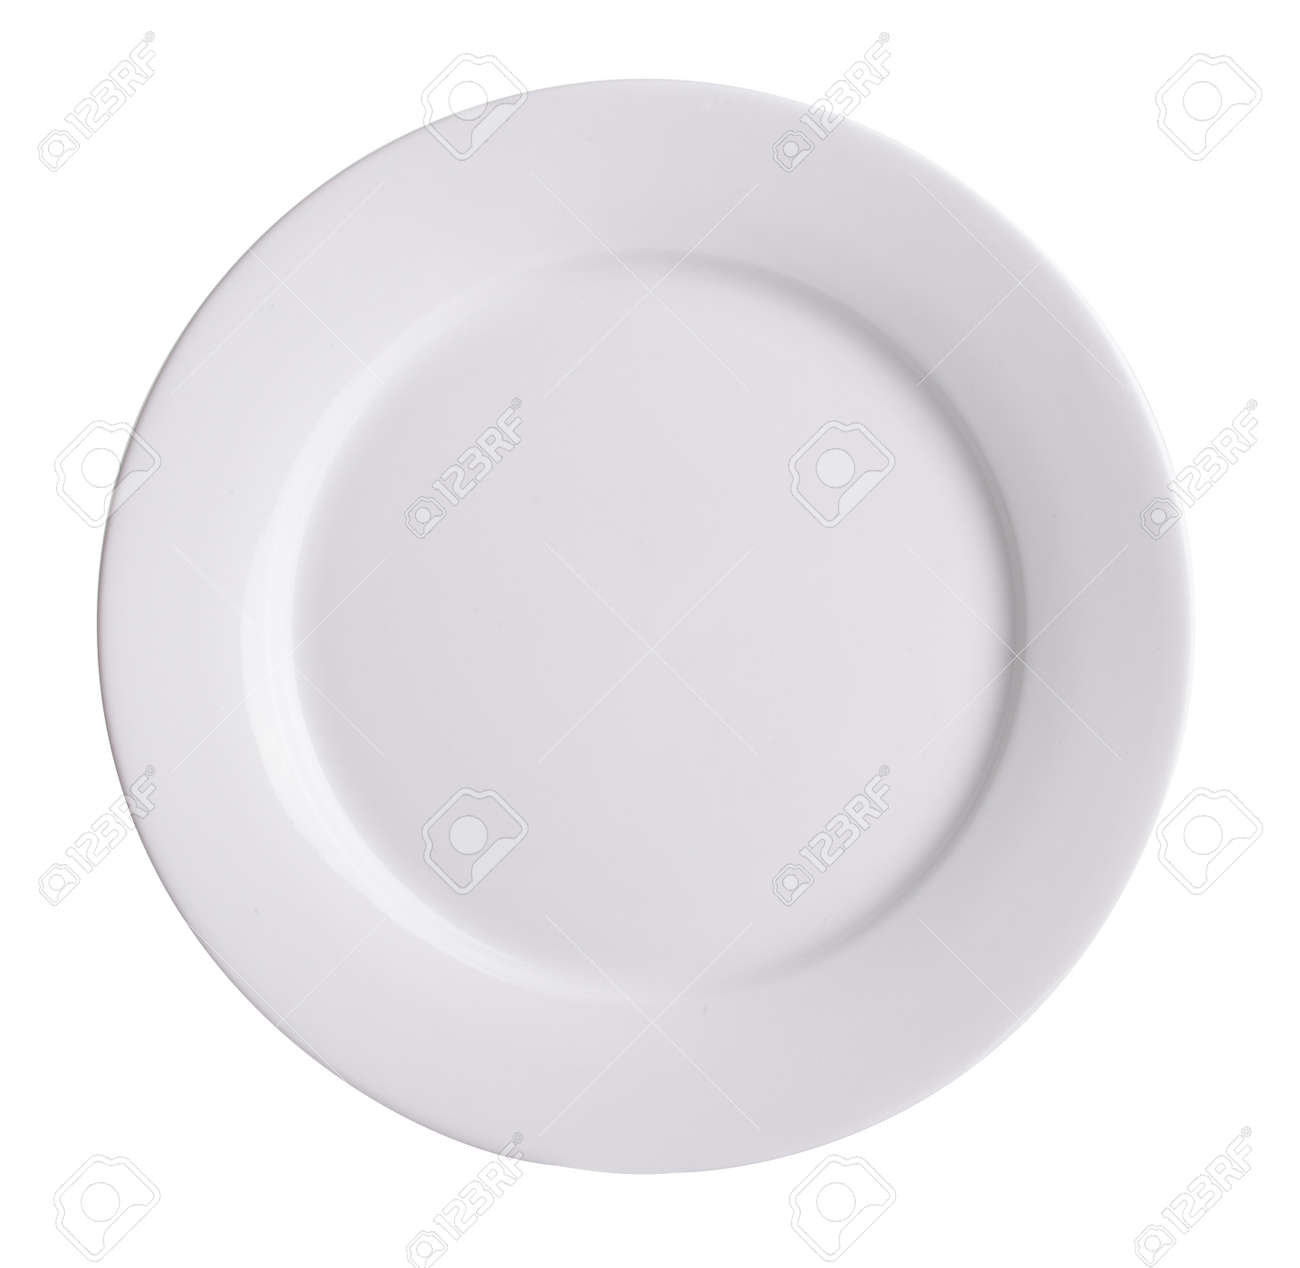 ceramic plate on white background Stock Photo - 37373250  sc 1 st  123RF.com & Ceramic Plate On White Background Stock Photo Picture And Royalty ...